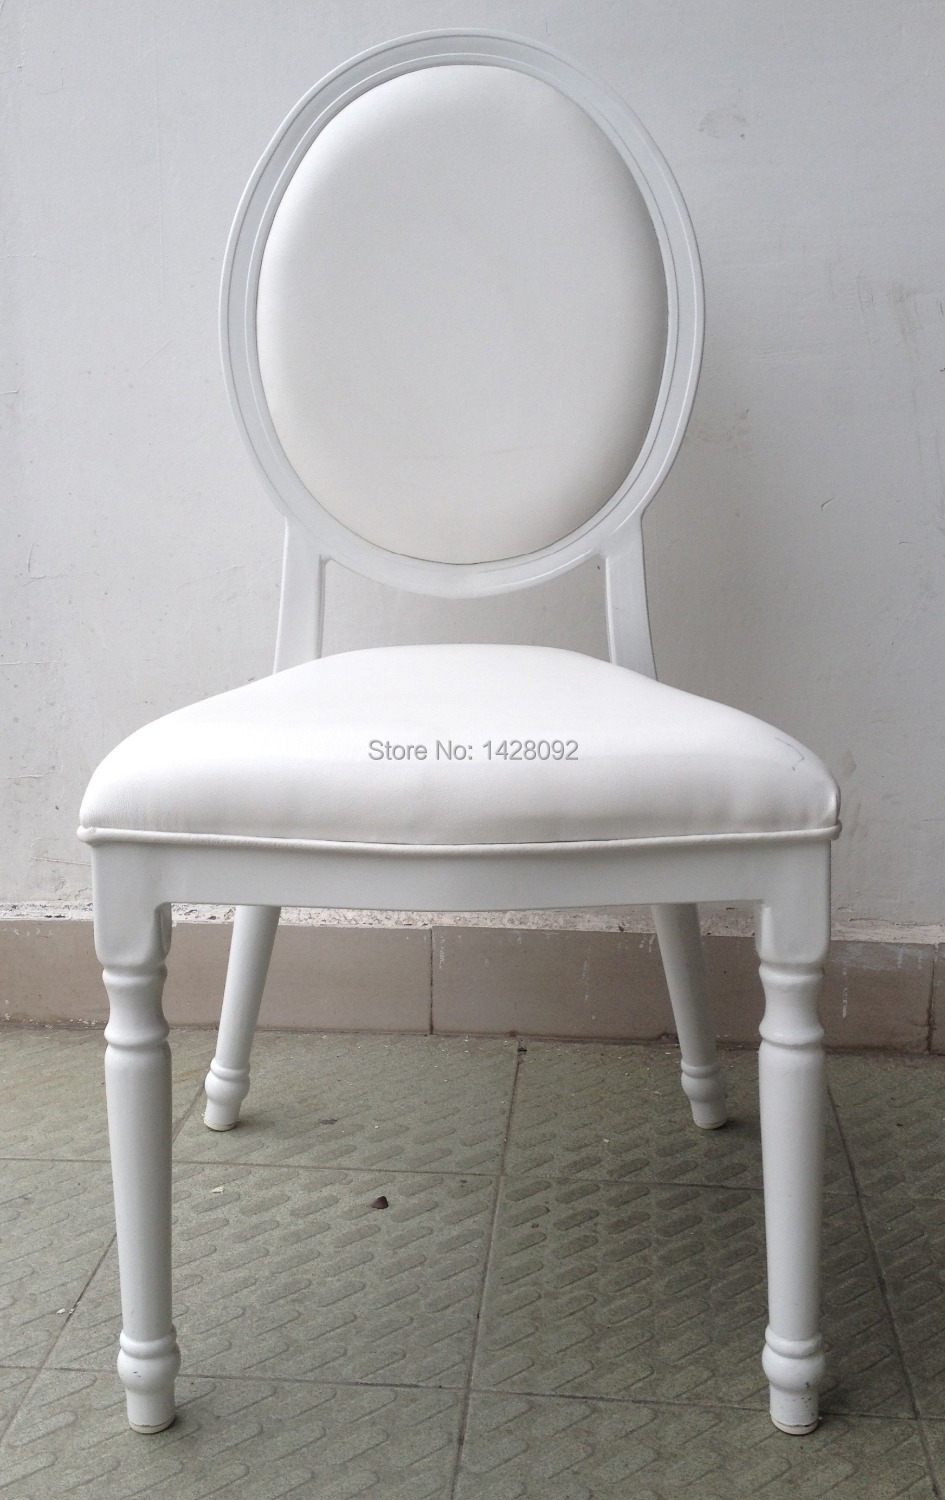 White Upholstered Chairs Chair Covers To Buy Aluminum Hotel Wedding Lq L9999 In